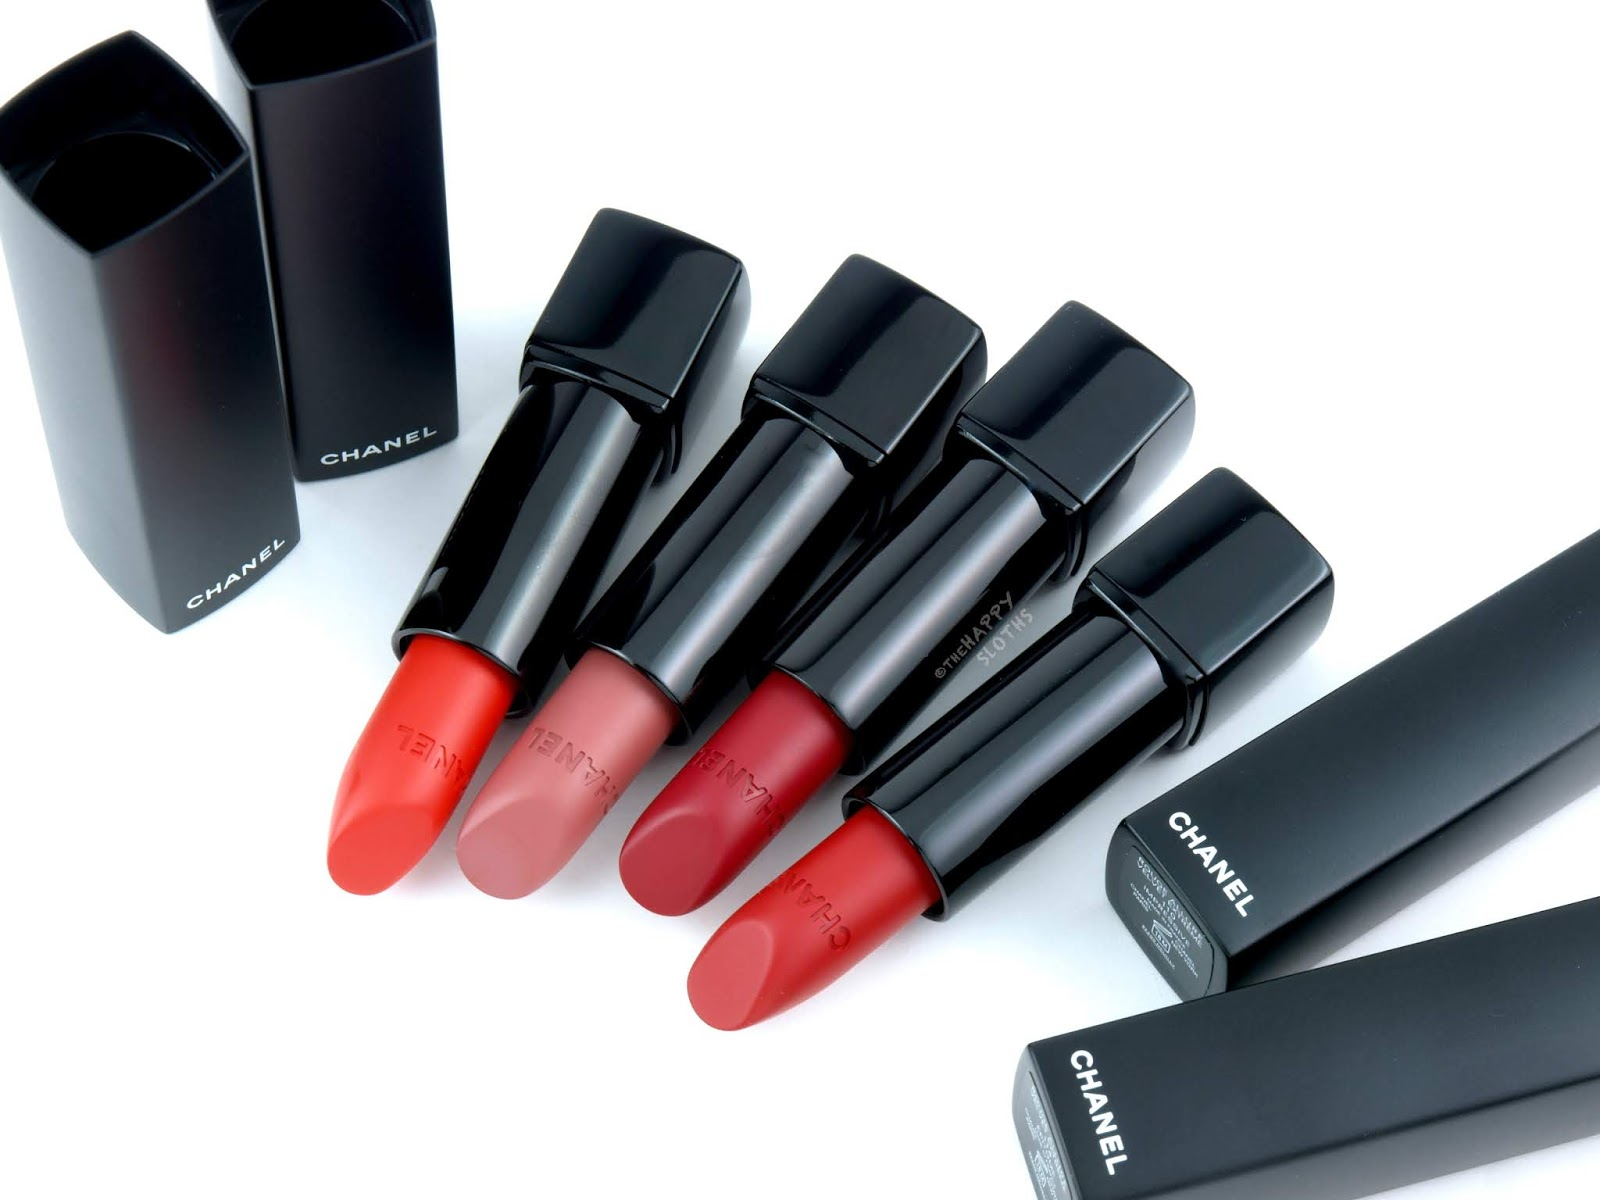 Chanel | Rouge Allure Velvet Extreme Lipstick: Review and Swatches